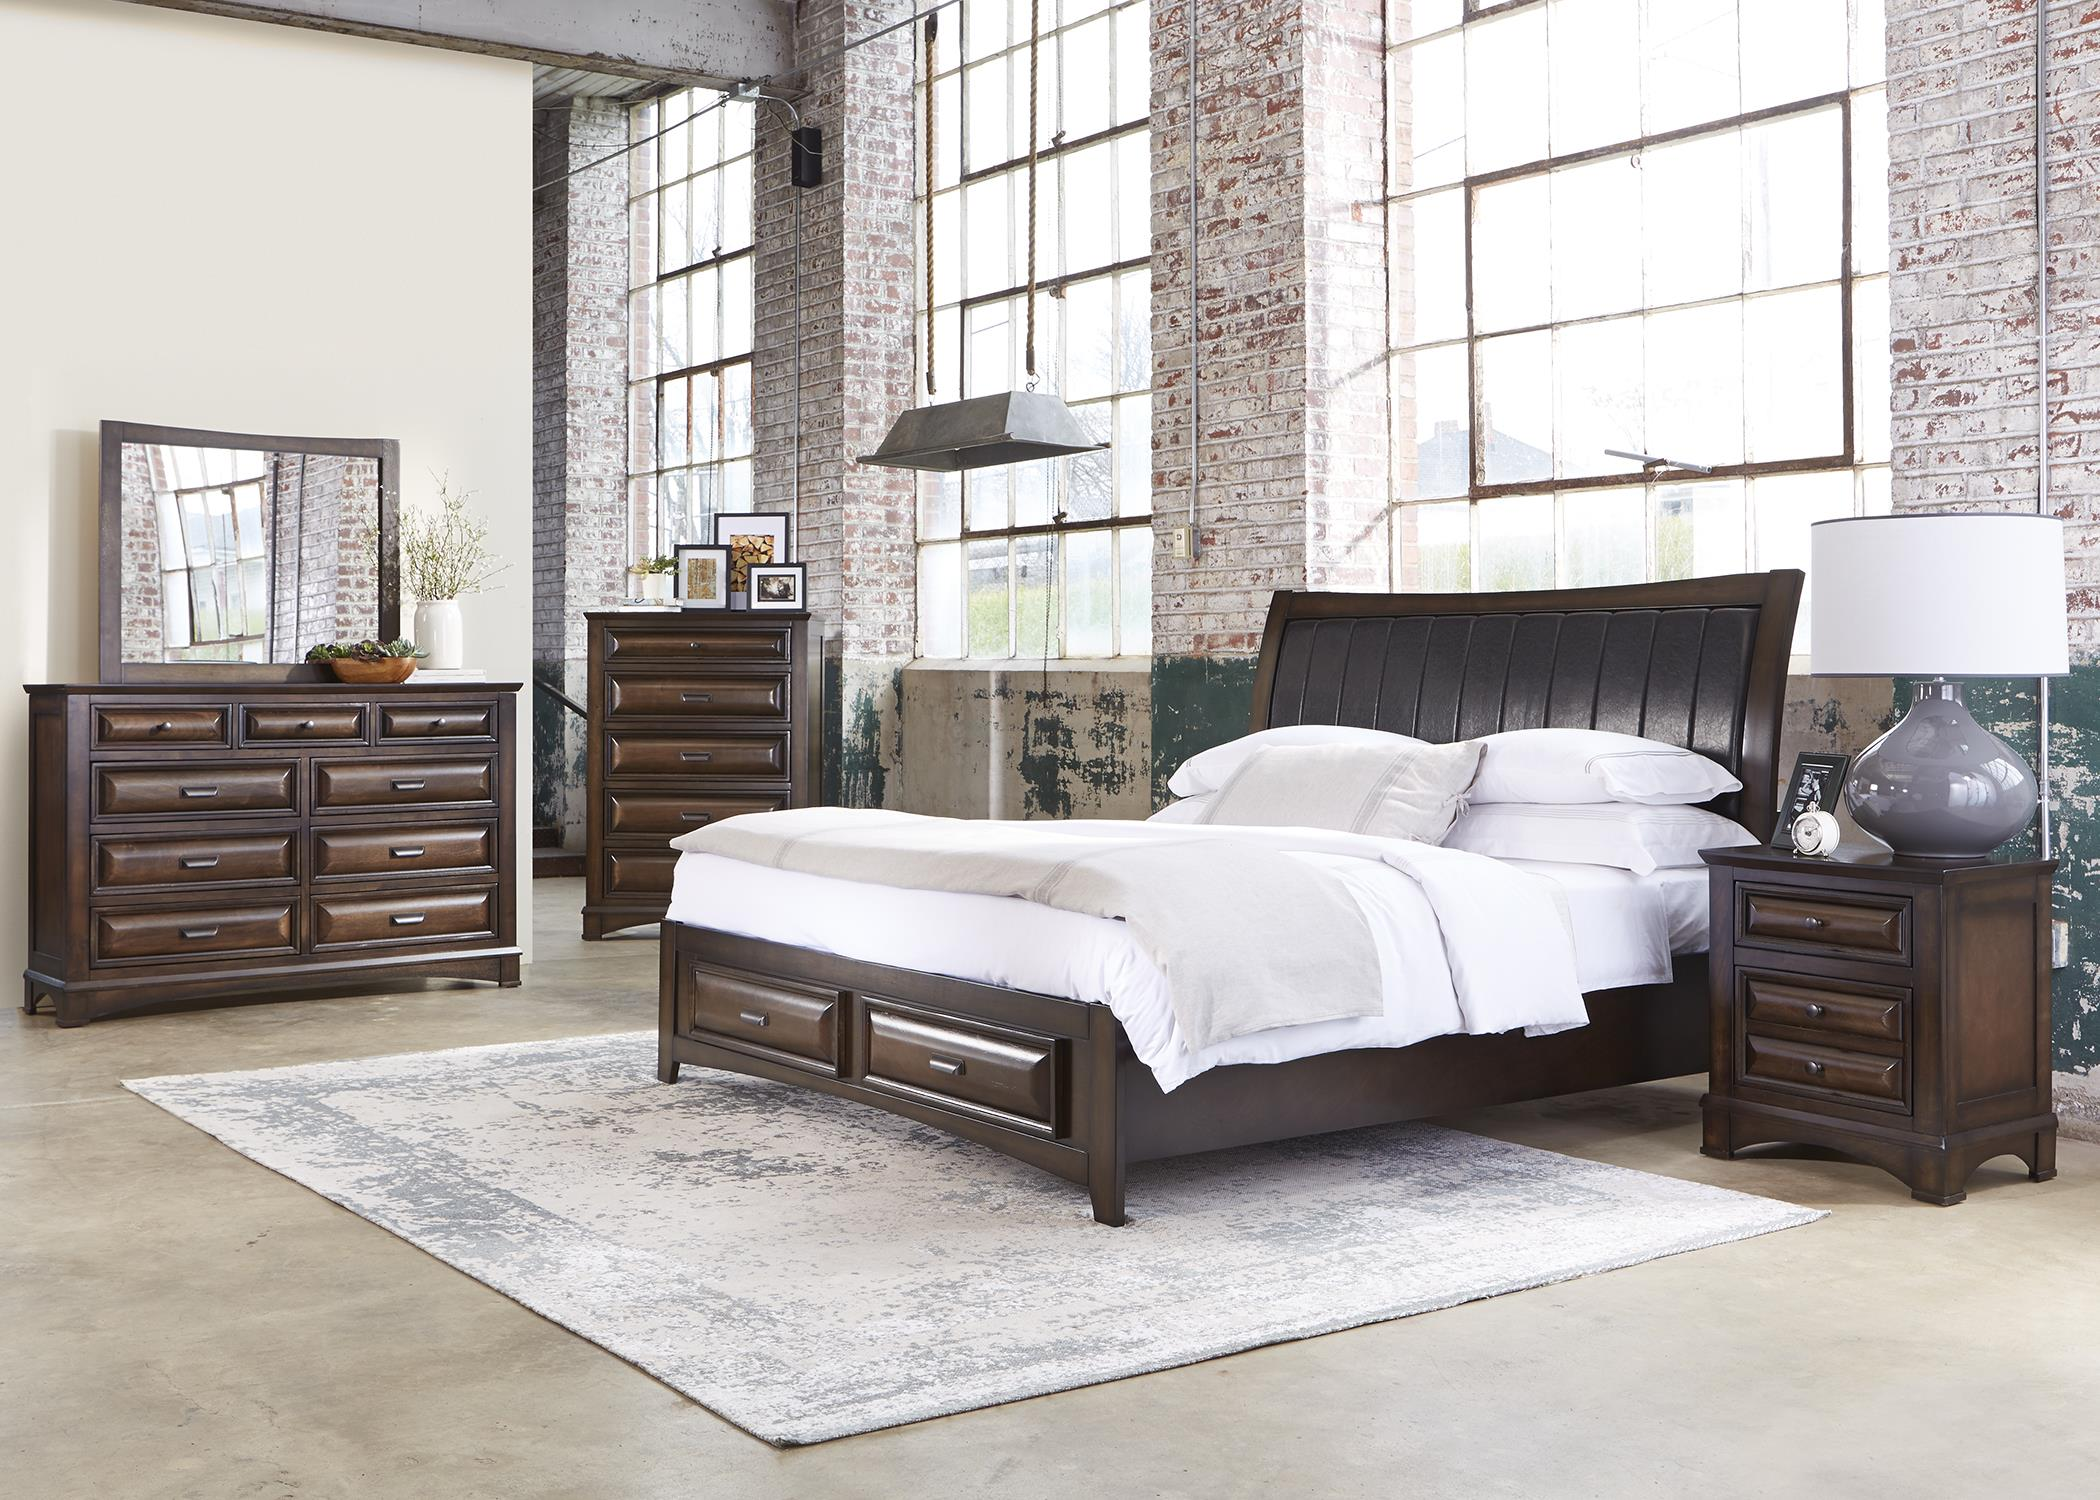 Liberty Furniture Knollwood Queen Bedroom Group - Item Number: 258 Q Bedroom Group 1